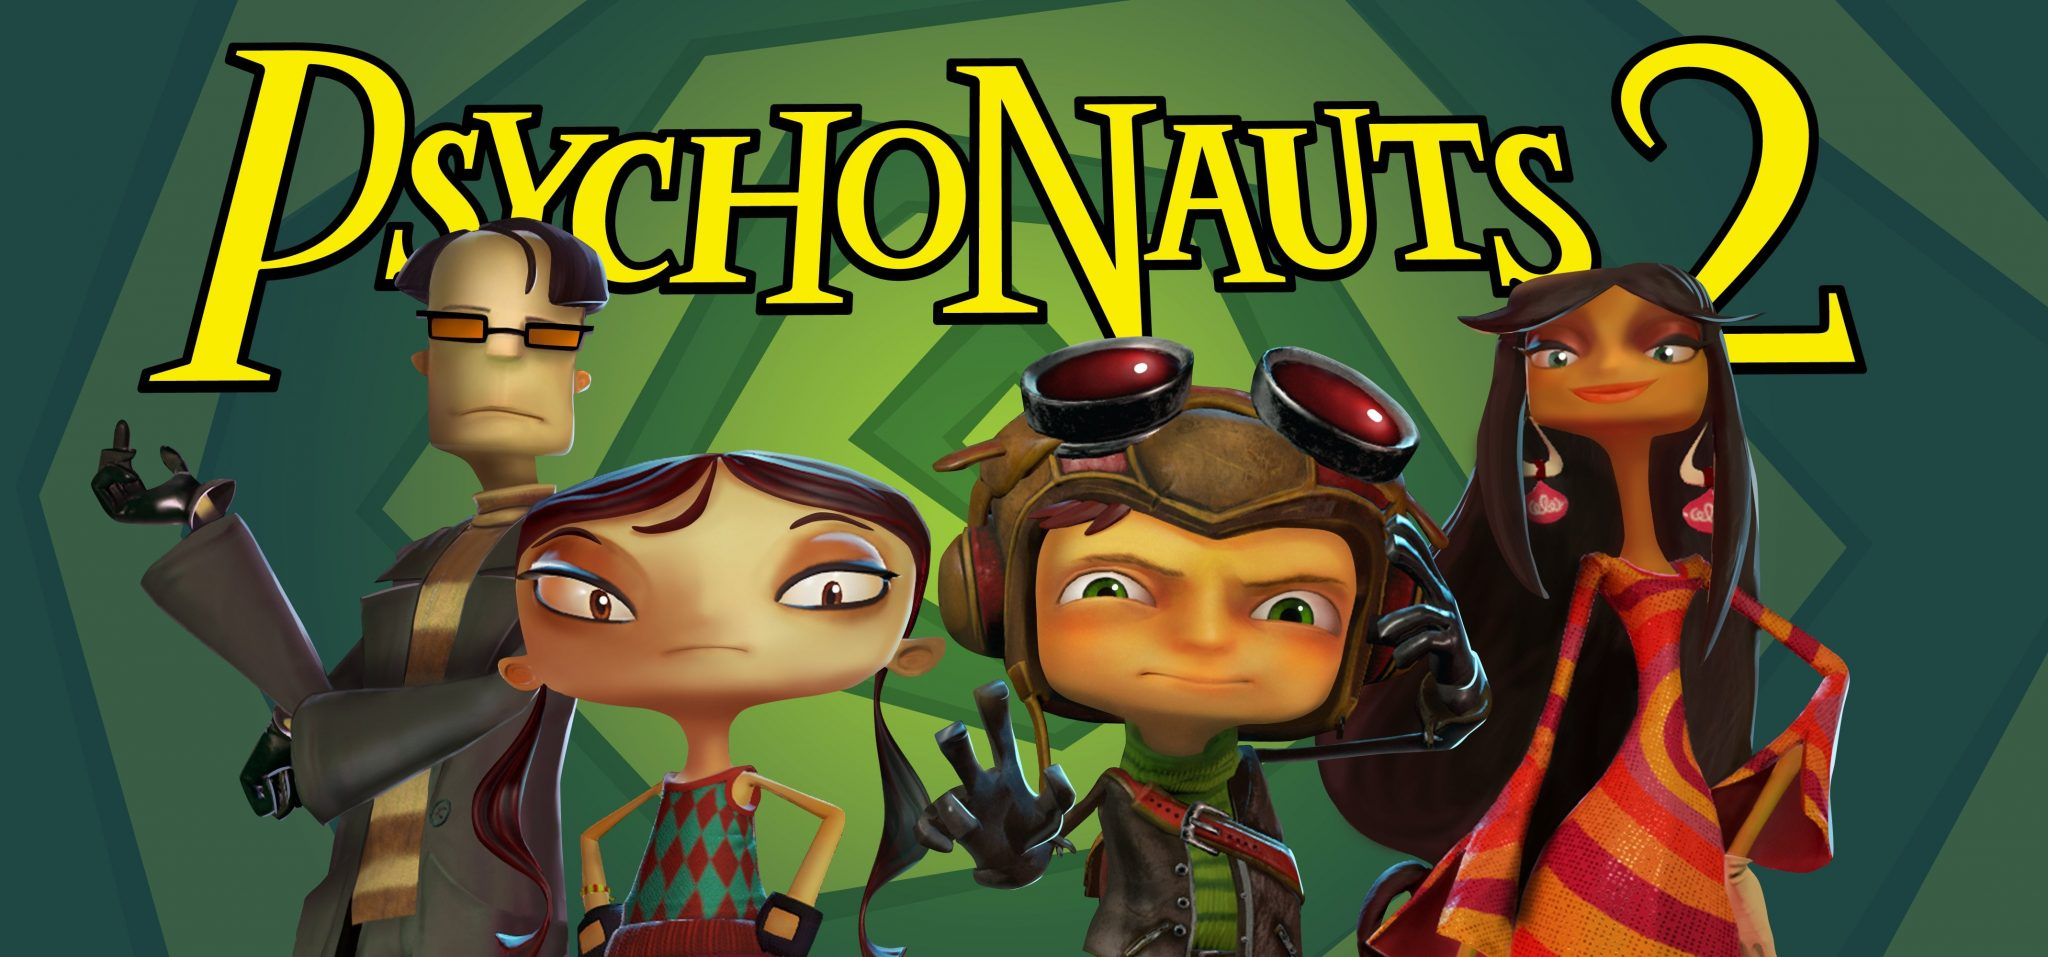 Psychonauts 2 A New Sci-fi Game